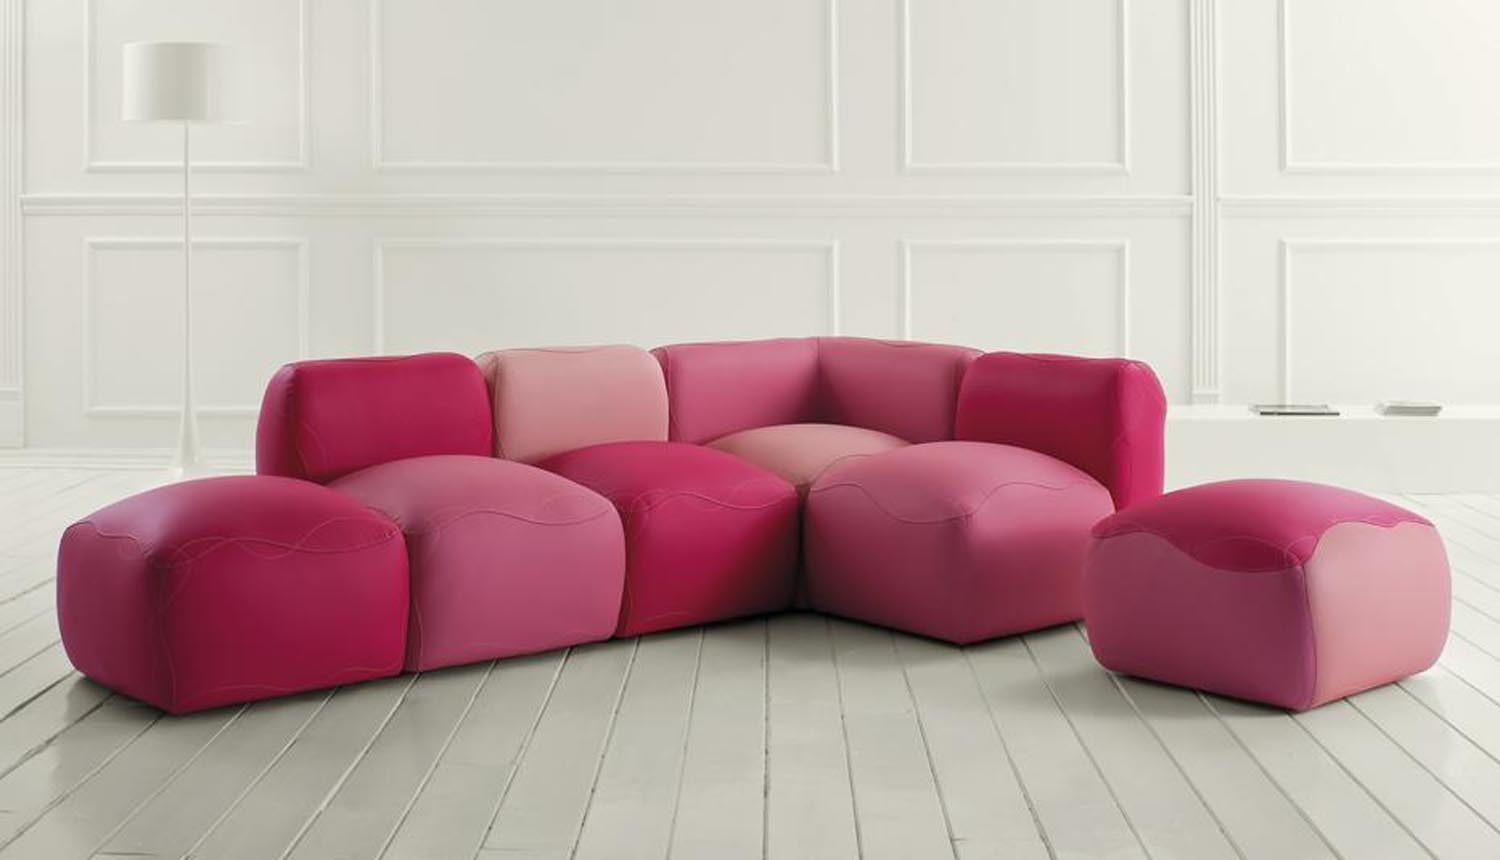 Fun and unique sofa designs New couch designs